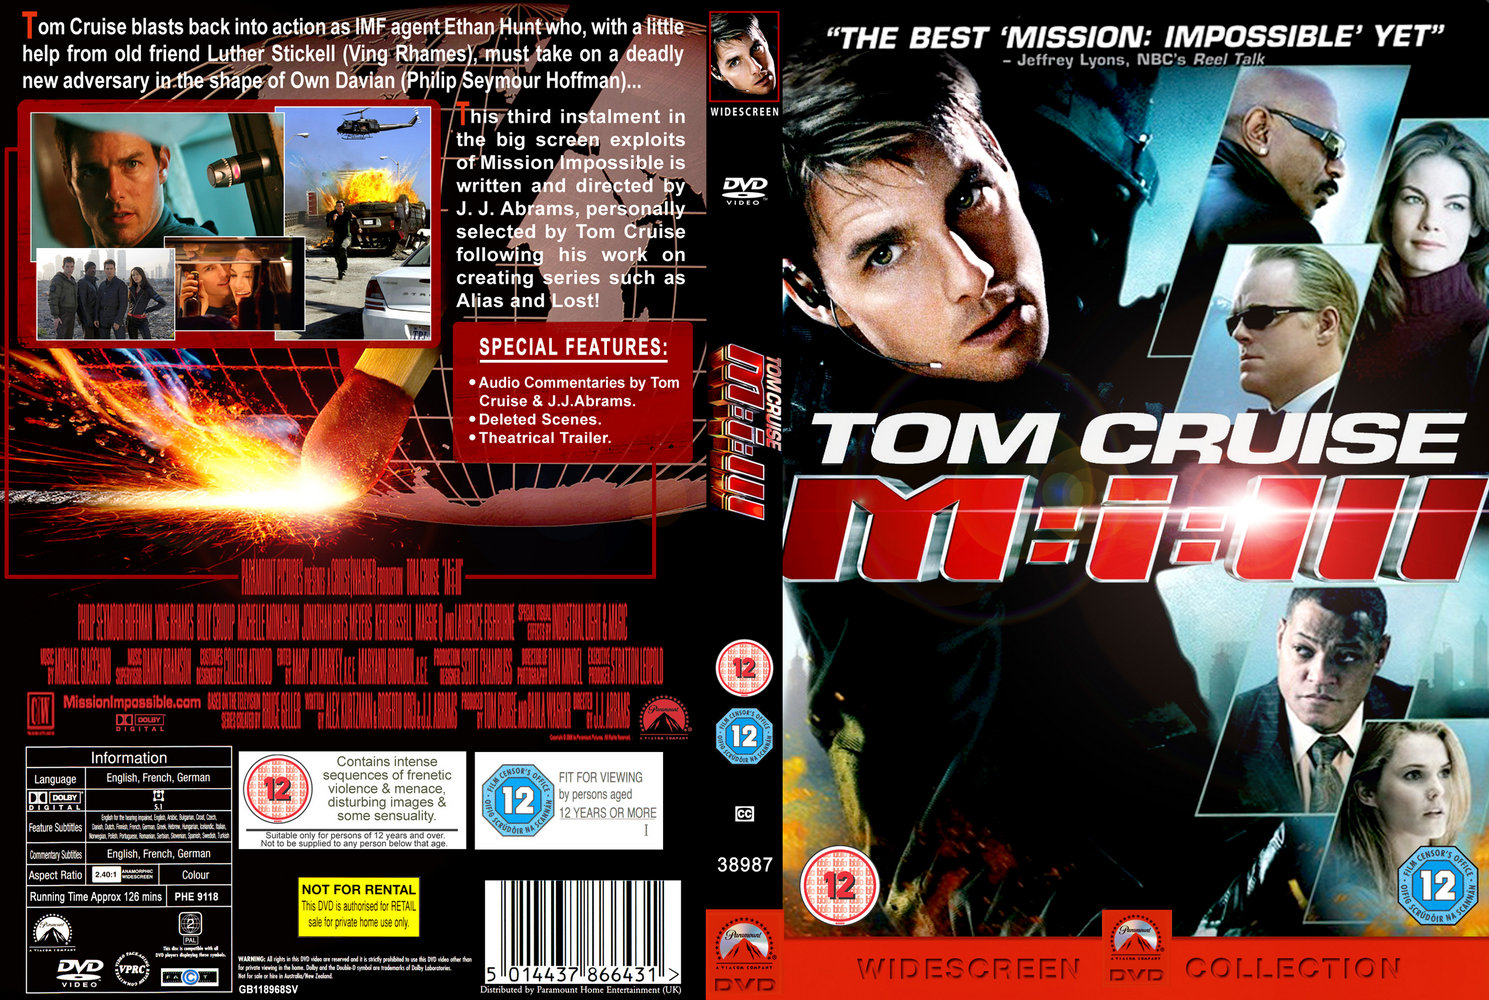 Mission Impossible Iii Full Movie Free Download Online Content